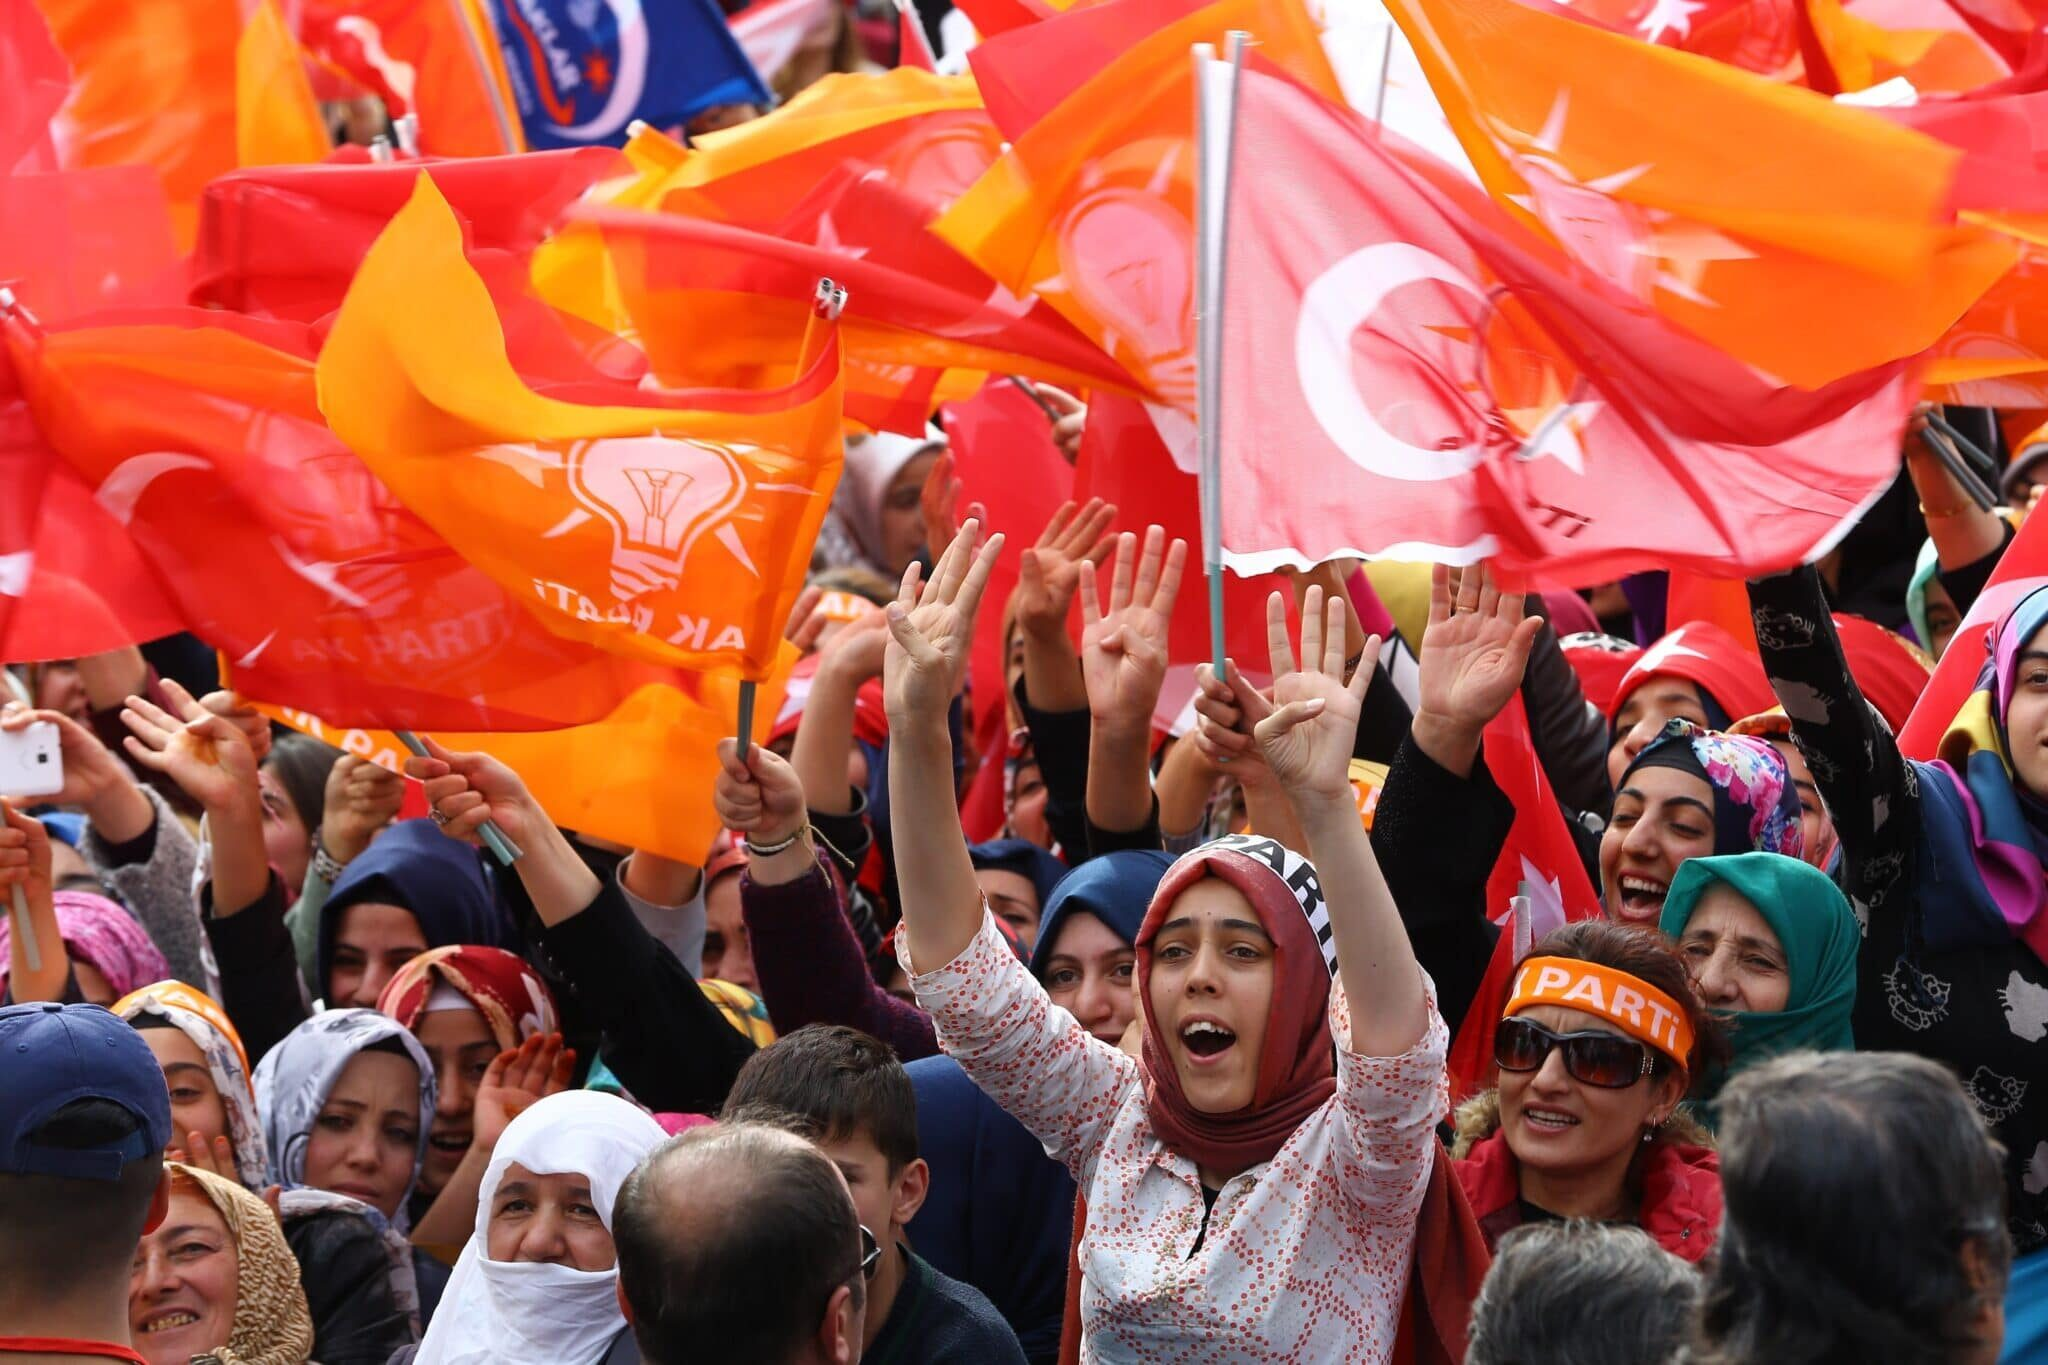 Supporters wave flags as Turkish Prime Minister and Justice and Development (AK) Party leader, Ahmet Davutoglu holds an election campaign rally in Van province of Turkey on October 20, 2015